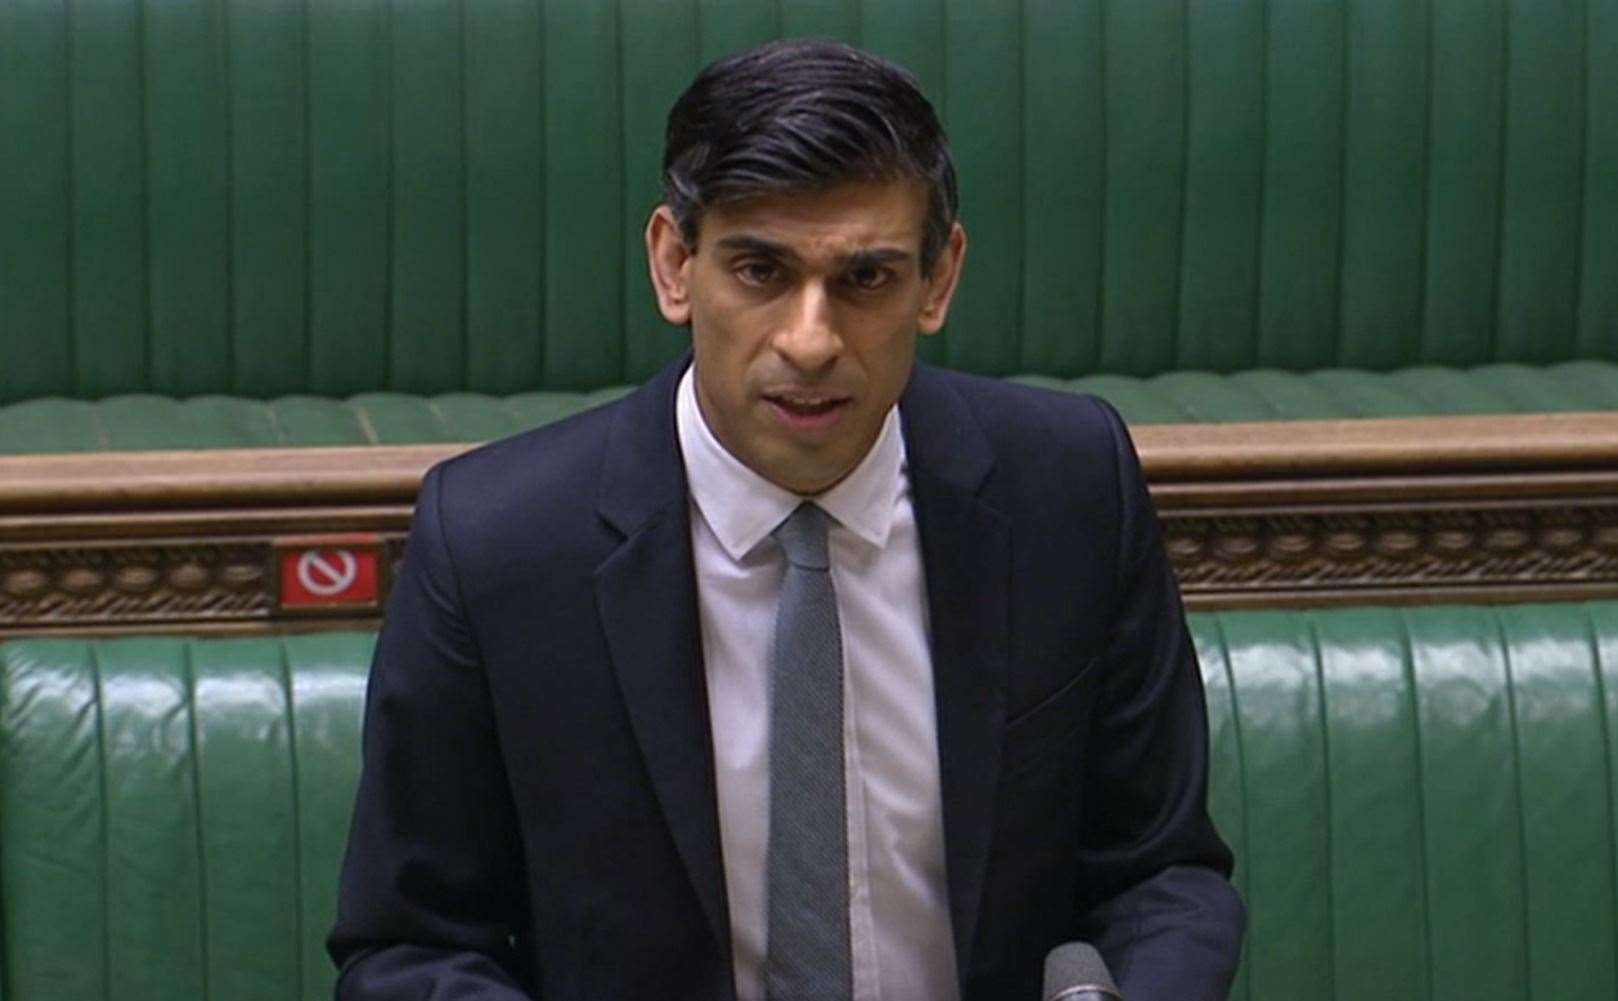 Chancellor of the Exchequer Rishi Sunak delivering his Budget to the House of Commons